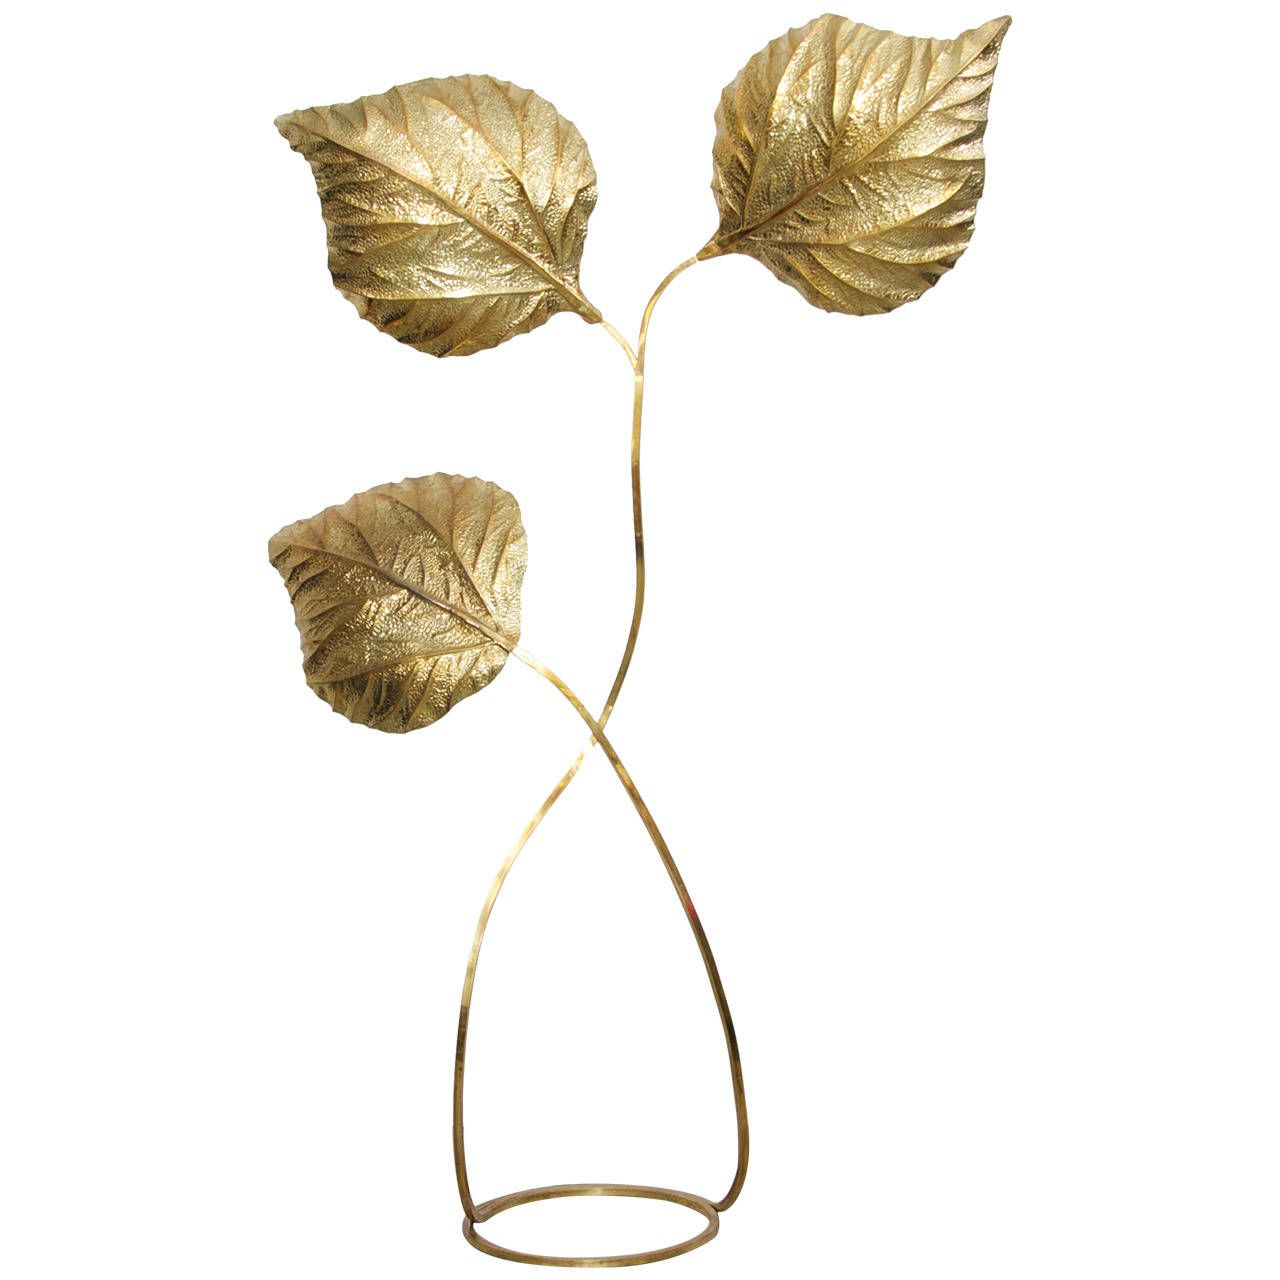 Extraordinary huge rhubarb leaves brass floor lamp by tommaso barbi extraordinary huge rhubarb leaves brass floor lamp by tommaso barbi from a unique collection of antique and modern floor lamps at mozeypictures Gallery